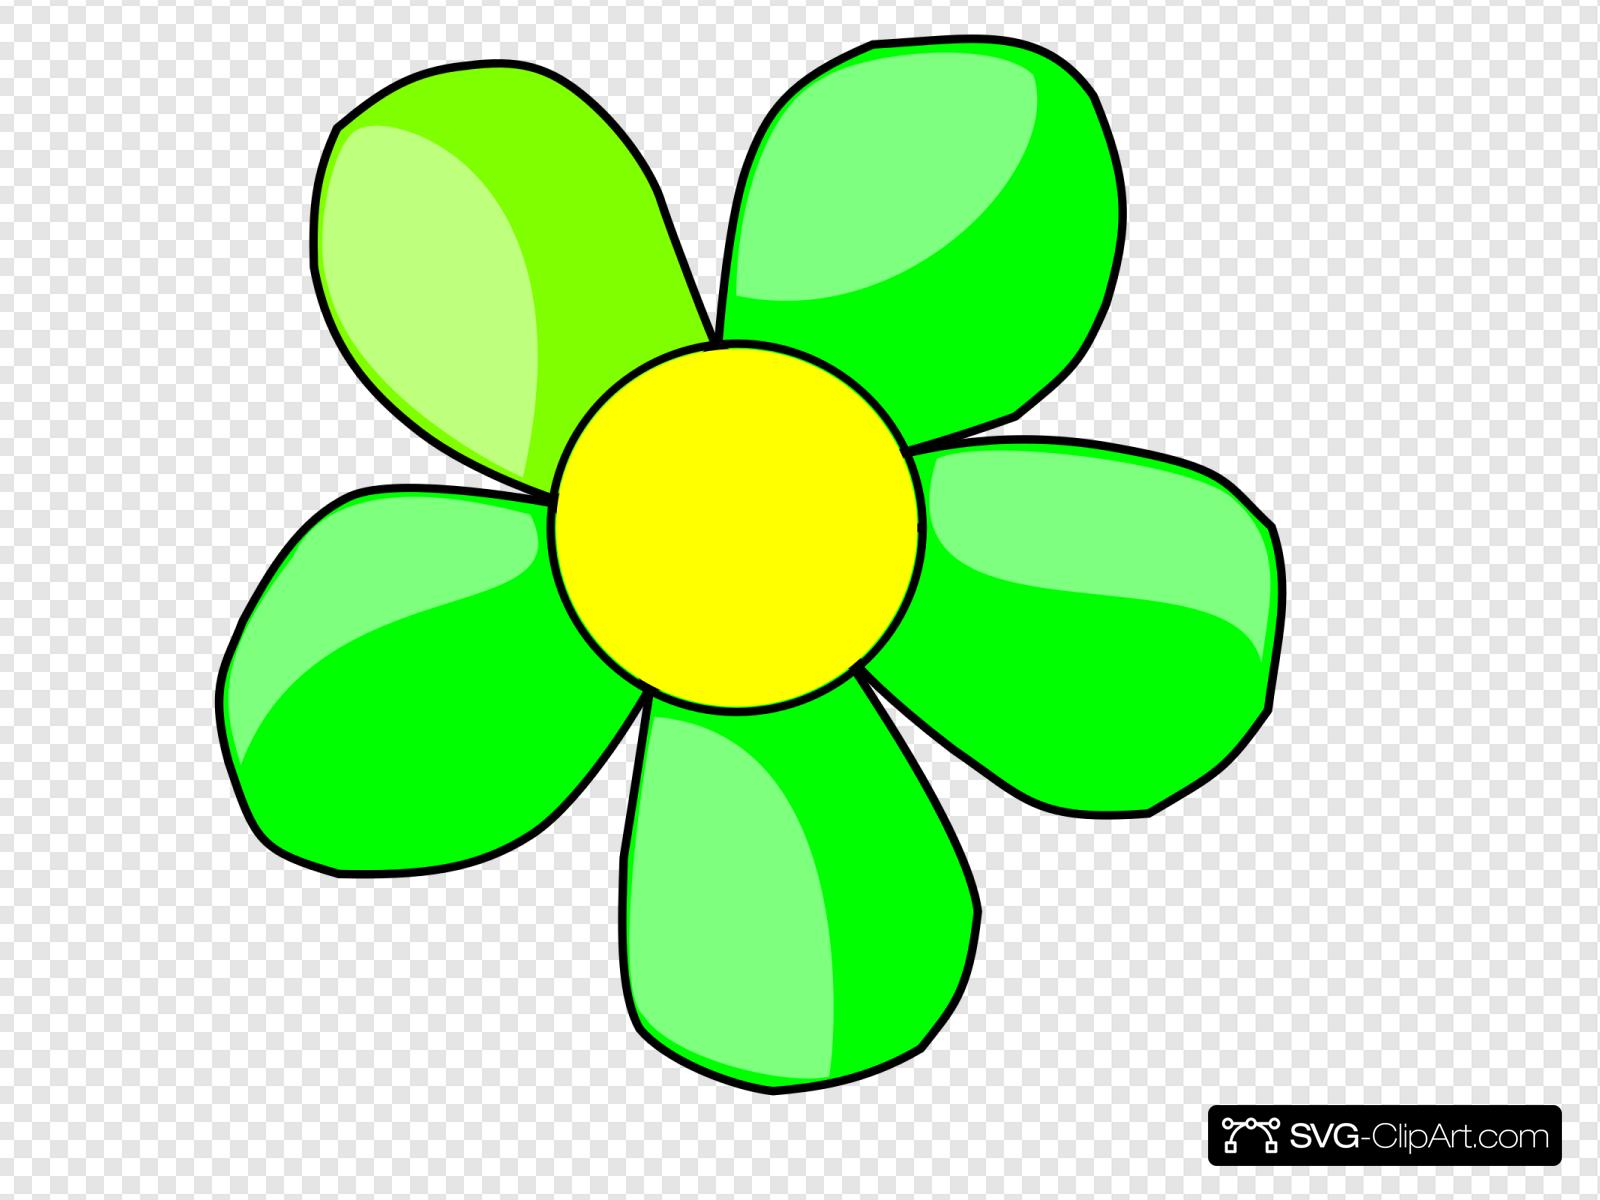 Green Flower Clip art, Icon and SVG.